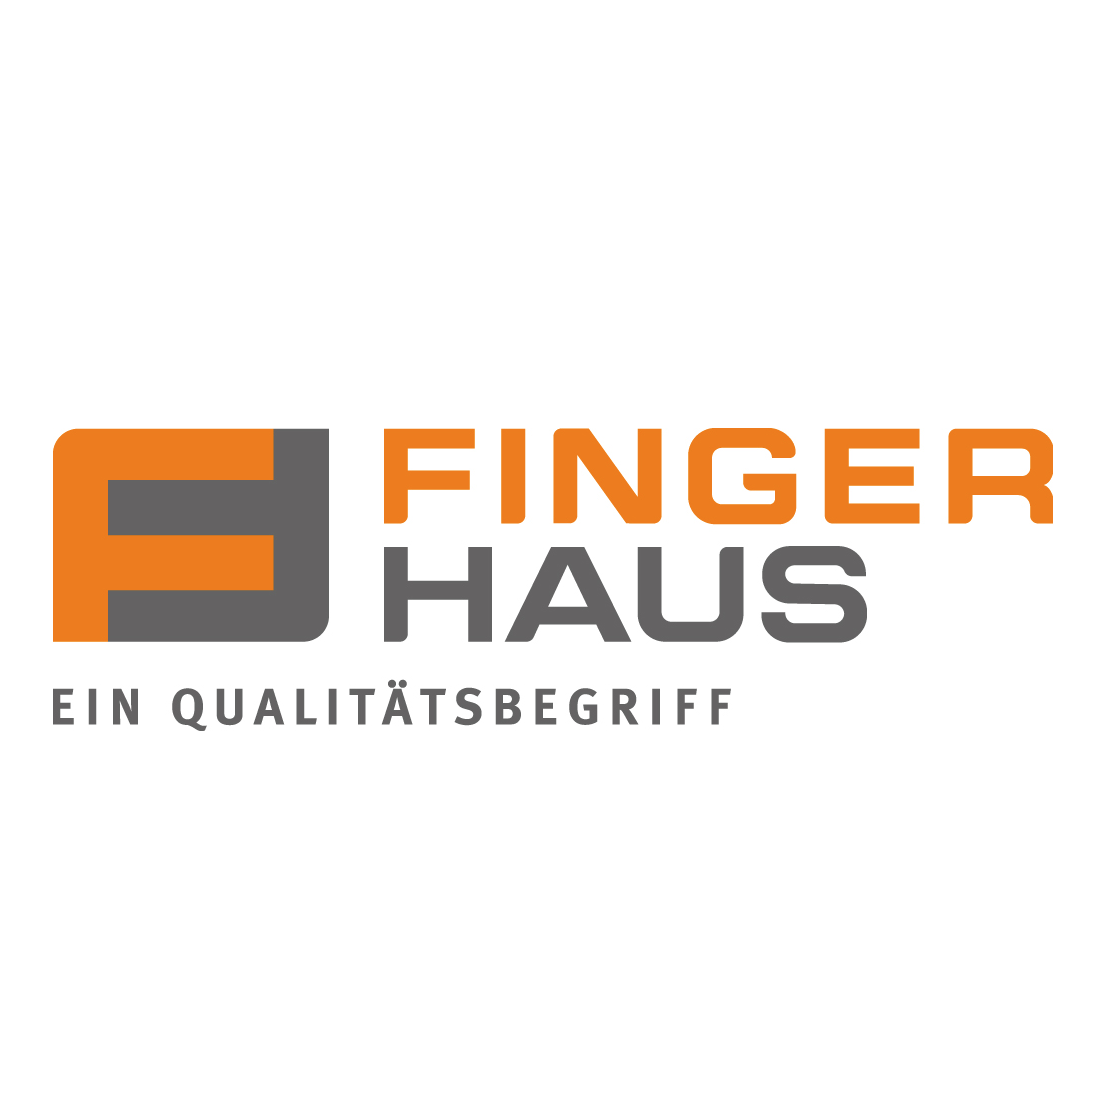 fingerhaus gmbh musterhaus m lheim k rlich sanierungsarbeiten m lheim k rlich deutschland. Black Bedroom Furniture Sets. Home Design Ideas